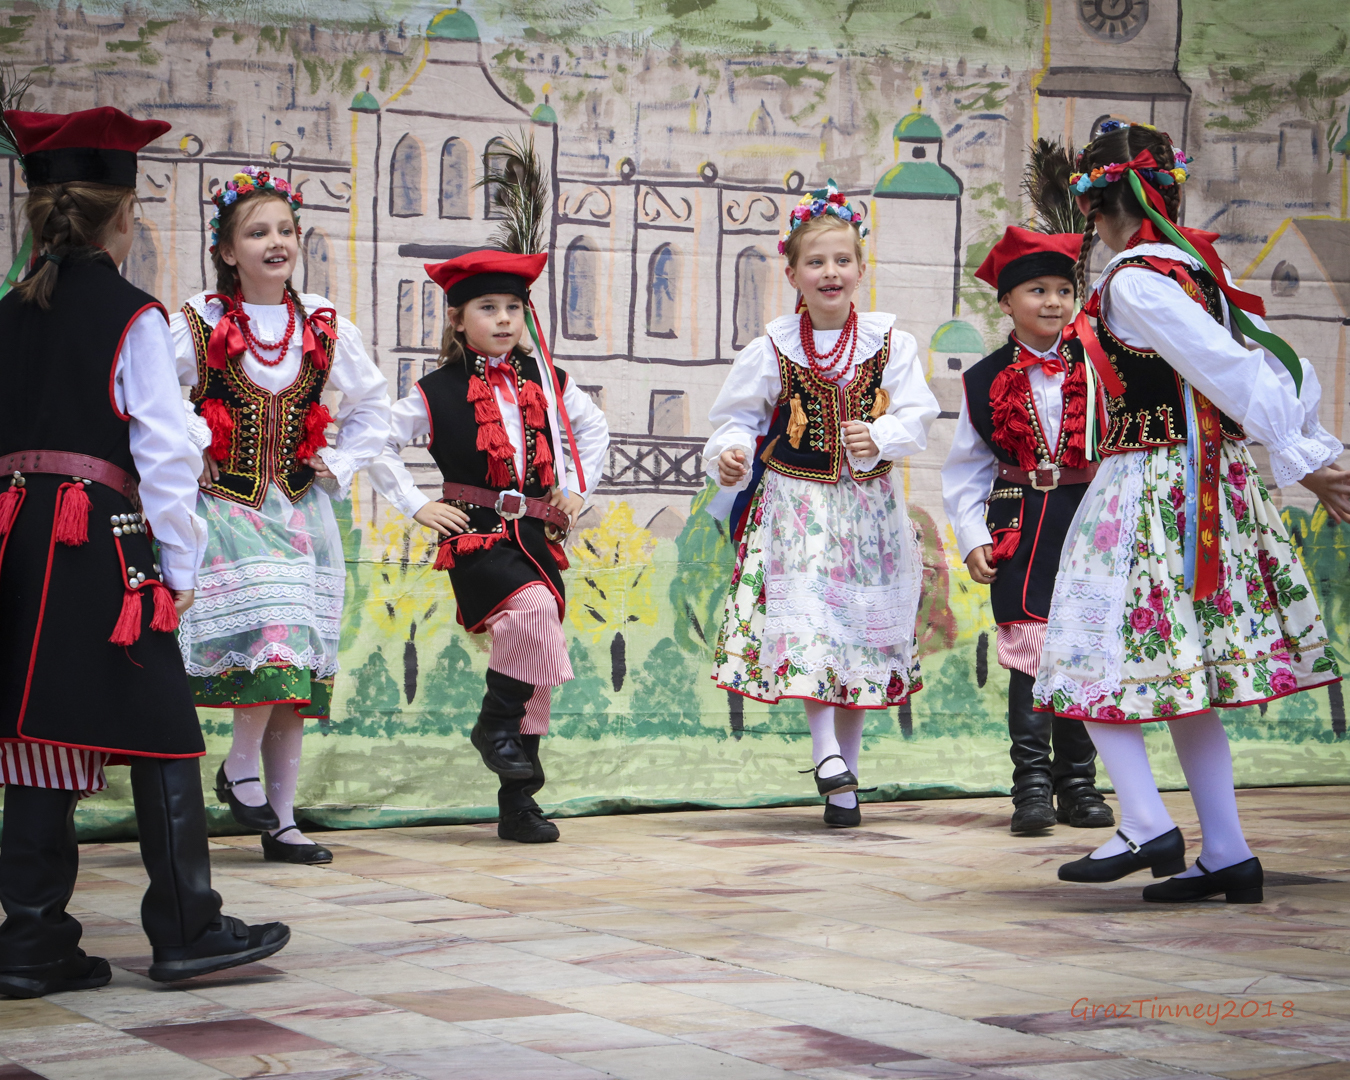 Children dancing at Polish Festival at Federation Square